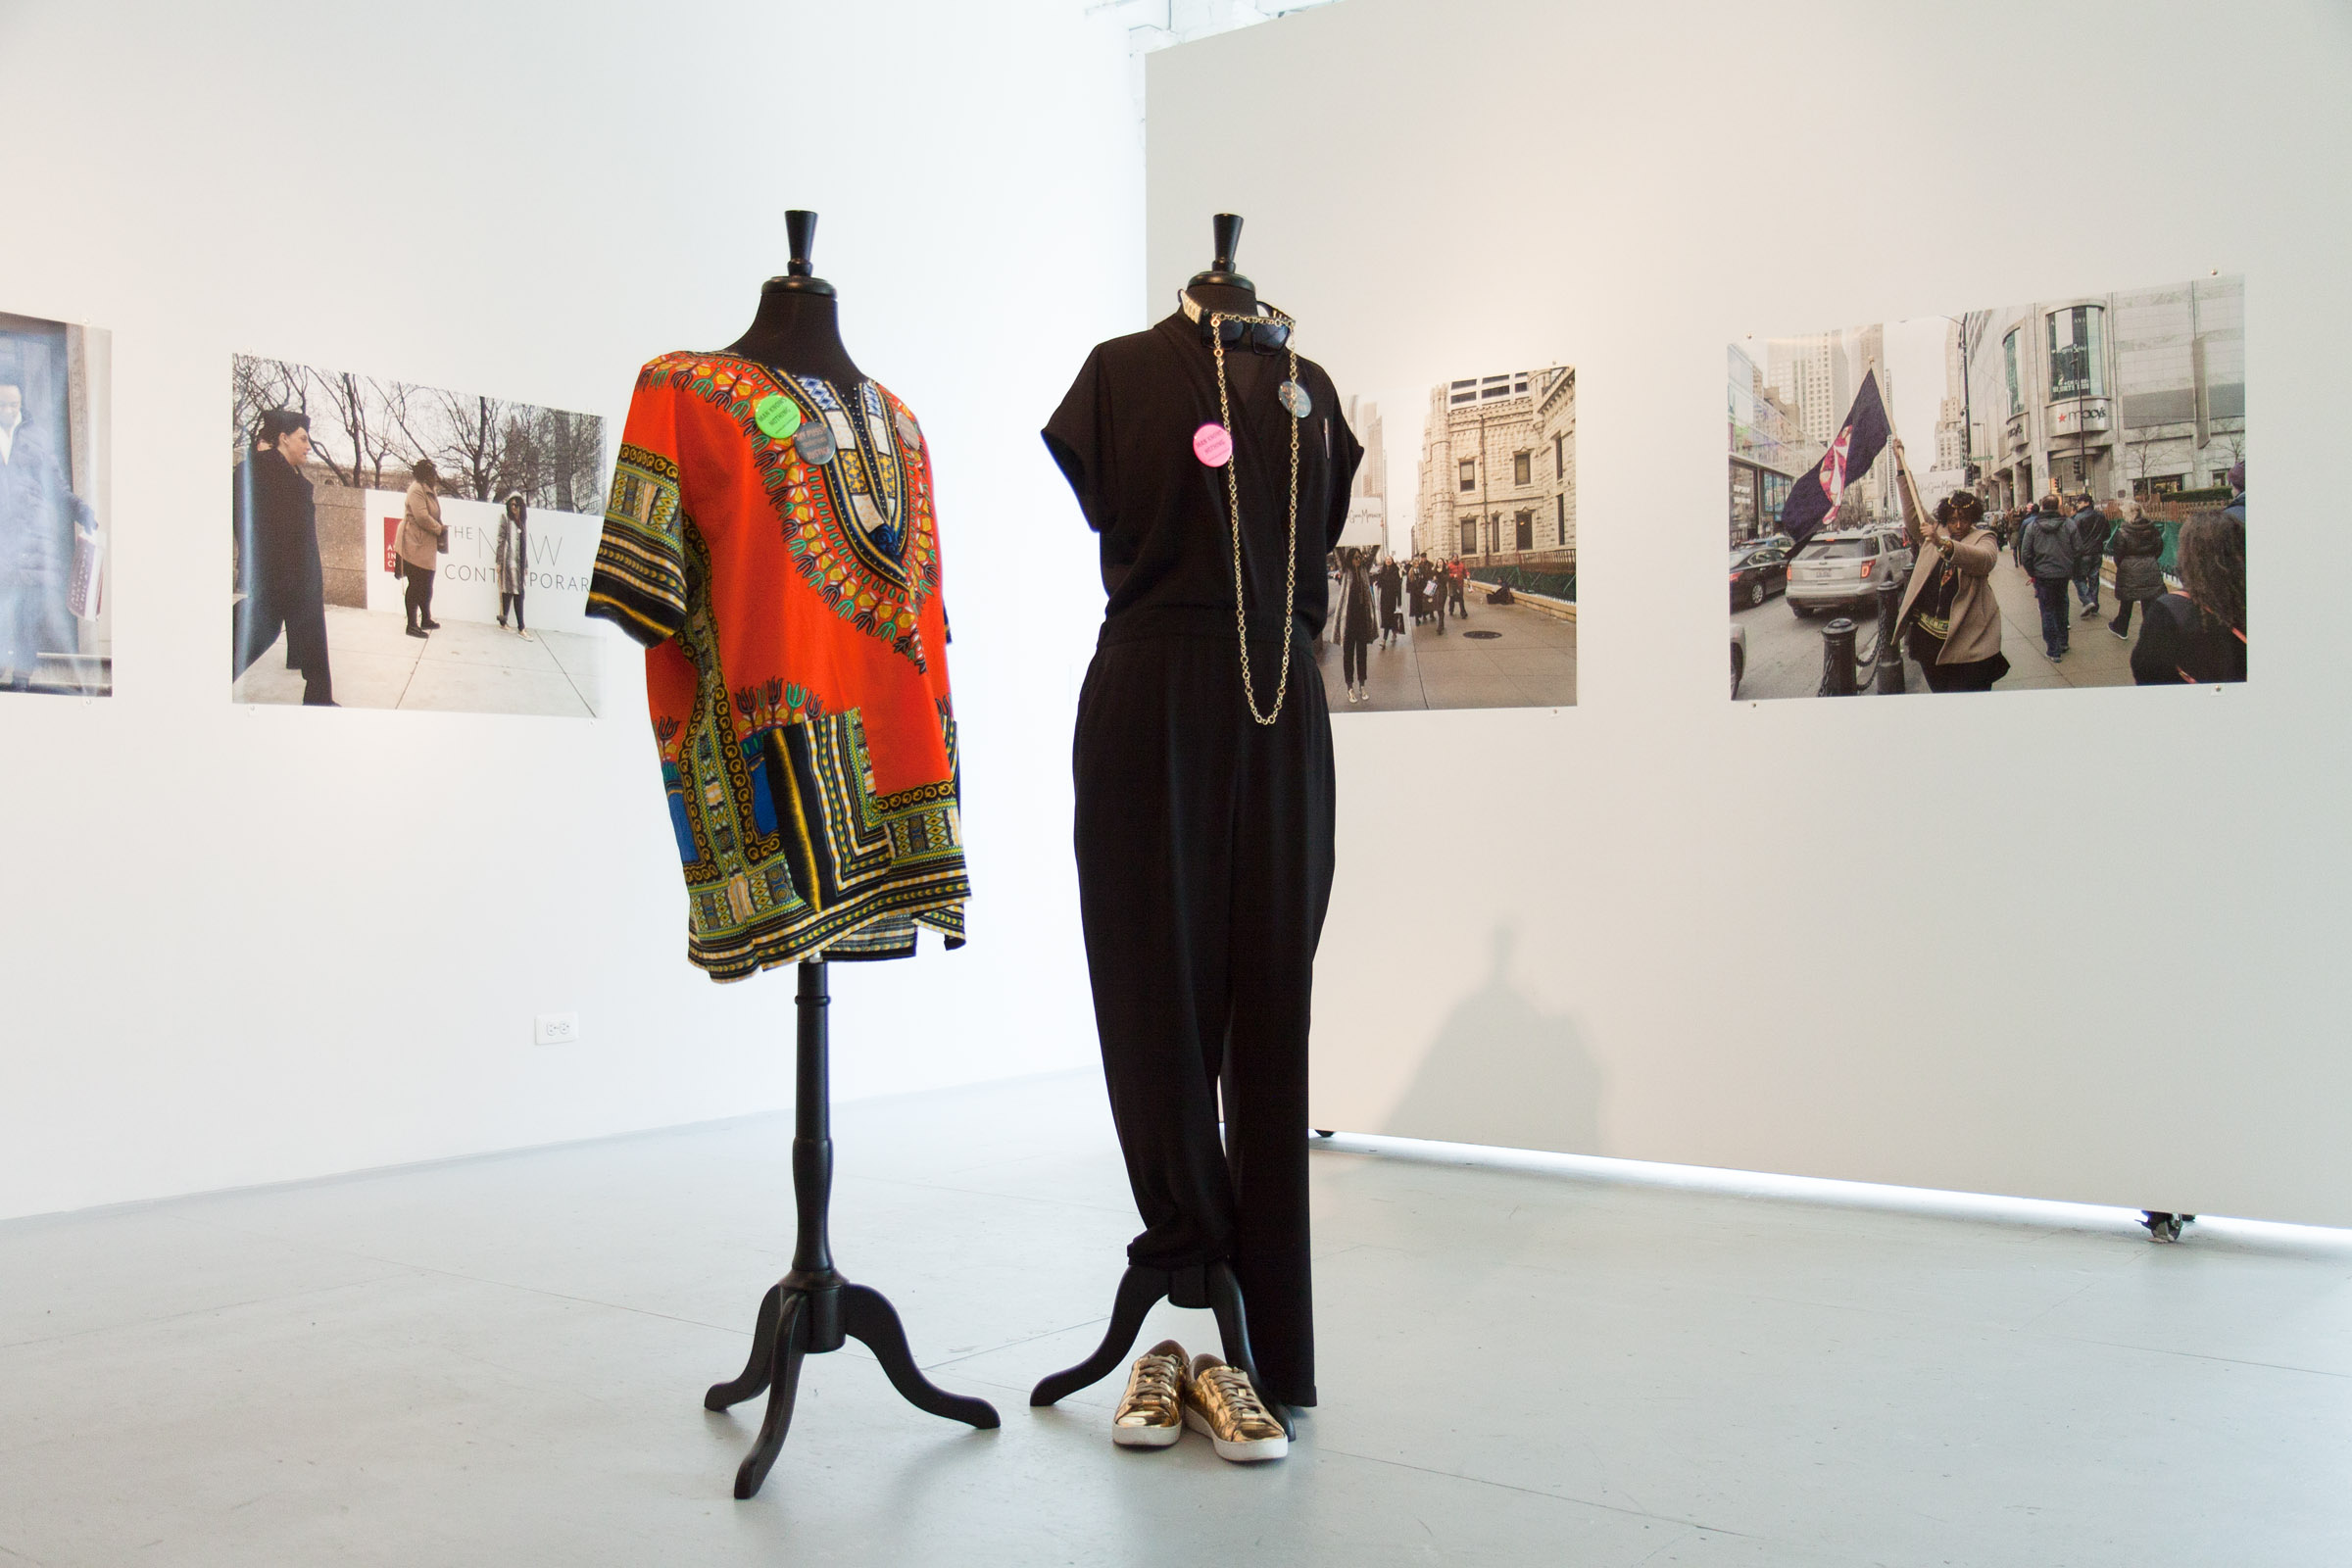 """For #NewGlobalMatriarchy, Stephanie Graham and Maya Mackrandilal present a series of performances and events that imagine radical black femme futures. The two perform as ancient goddesses who have become incarnated in contemporary US-hegemonic culture, a world of reality television, instagram celebrity, and hyper-sexualization. By inhabiting the visual language and logic of consumerism and voyeurship, the goddesses infiltrate imperialism on its home turf, imbuing the mundane and familiar with moments of radical imagination. What does it mean to be a strong woman with friends in a culture that can only imagine female sexual competition for the ever-elusive """"good man""""? How can we construct narratives that sabotage a culture that devalues black life, the labor of women, and commodifies queer desire? Is it possible to seduce the oppressor into relinquishing his power?"""